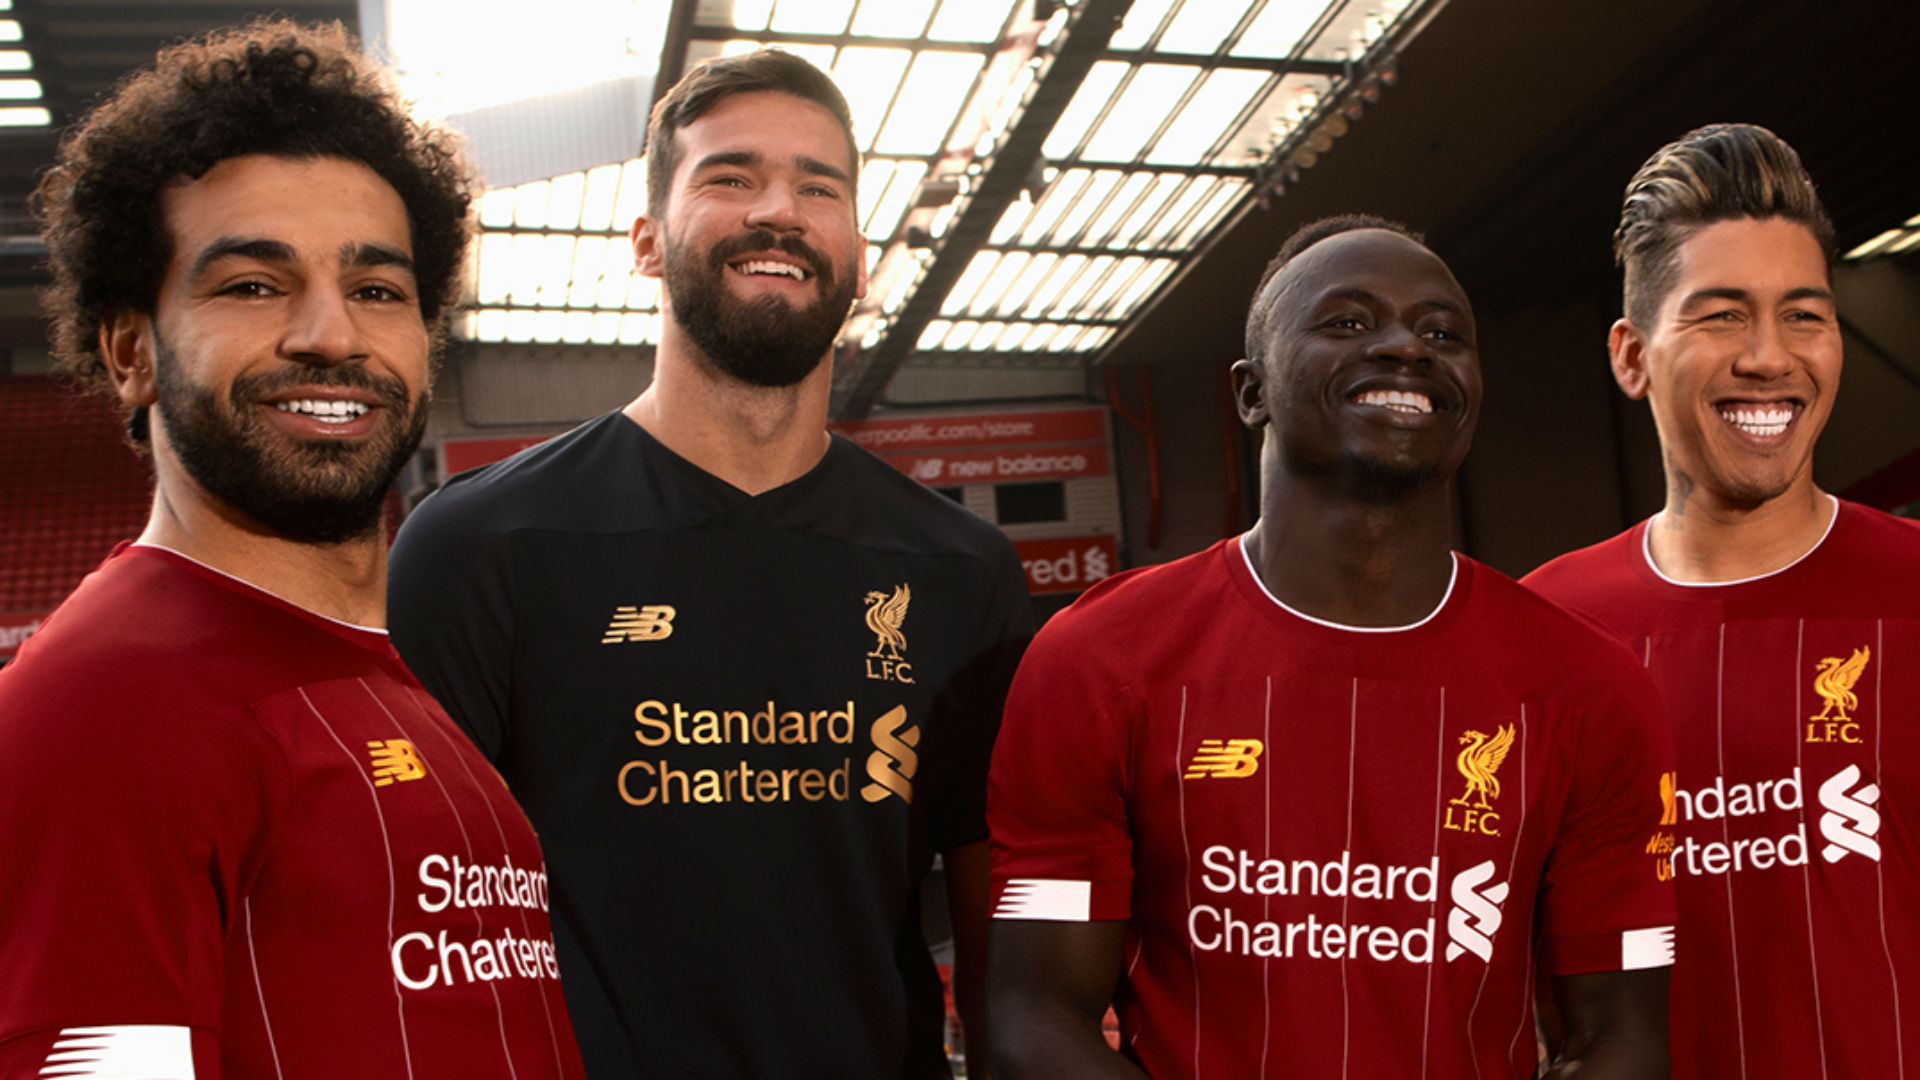 Liverpool reveal new kit in homage to legendary manager